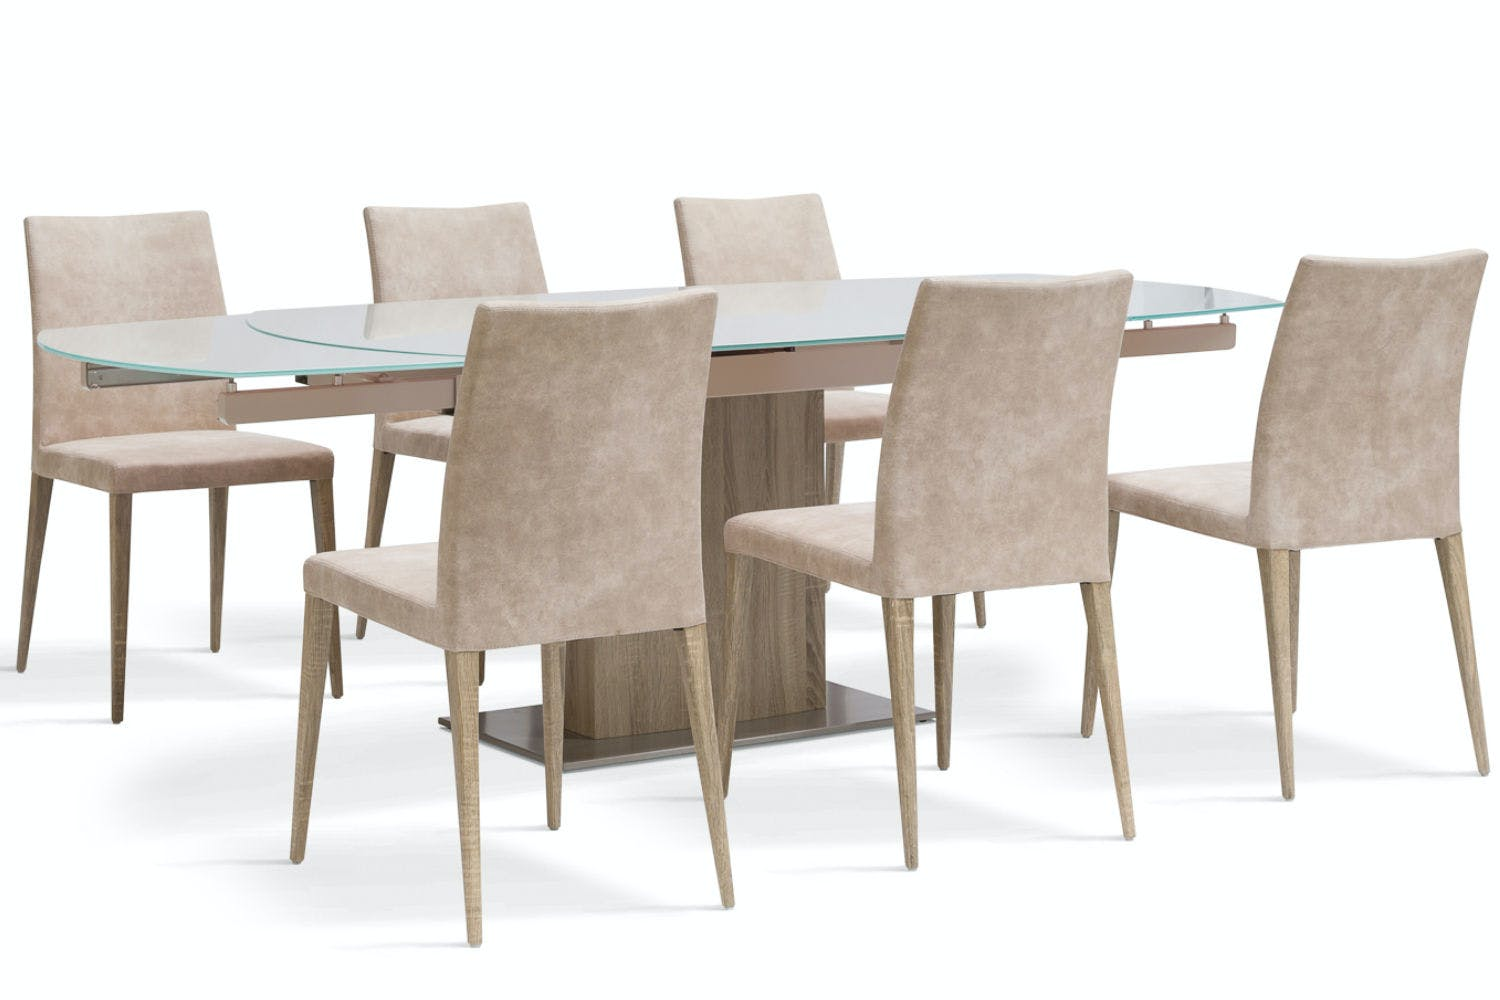 Lucci light 7 piece dining set low calvino dining chairs for 7 piece dining set